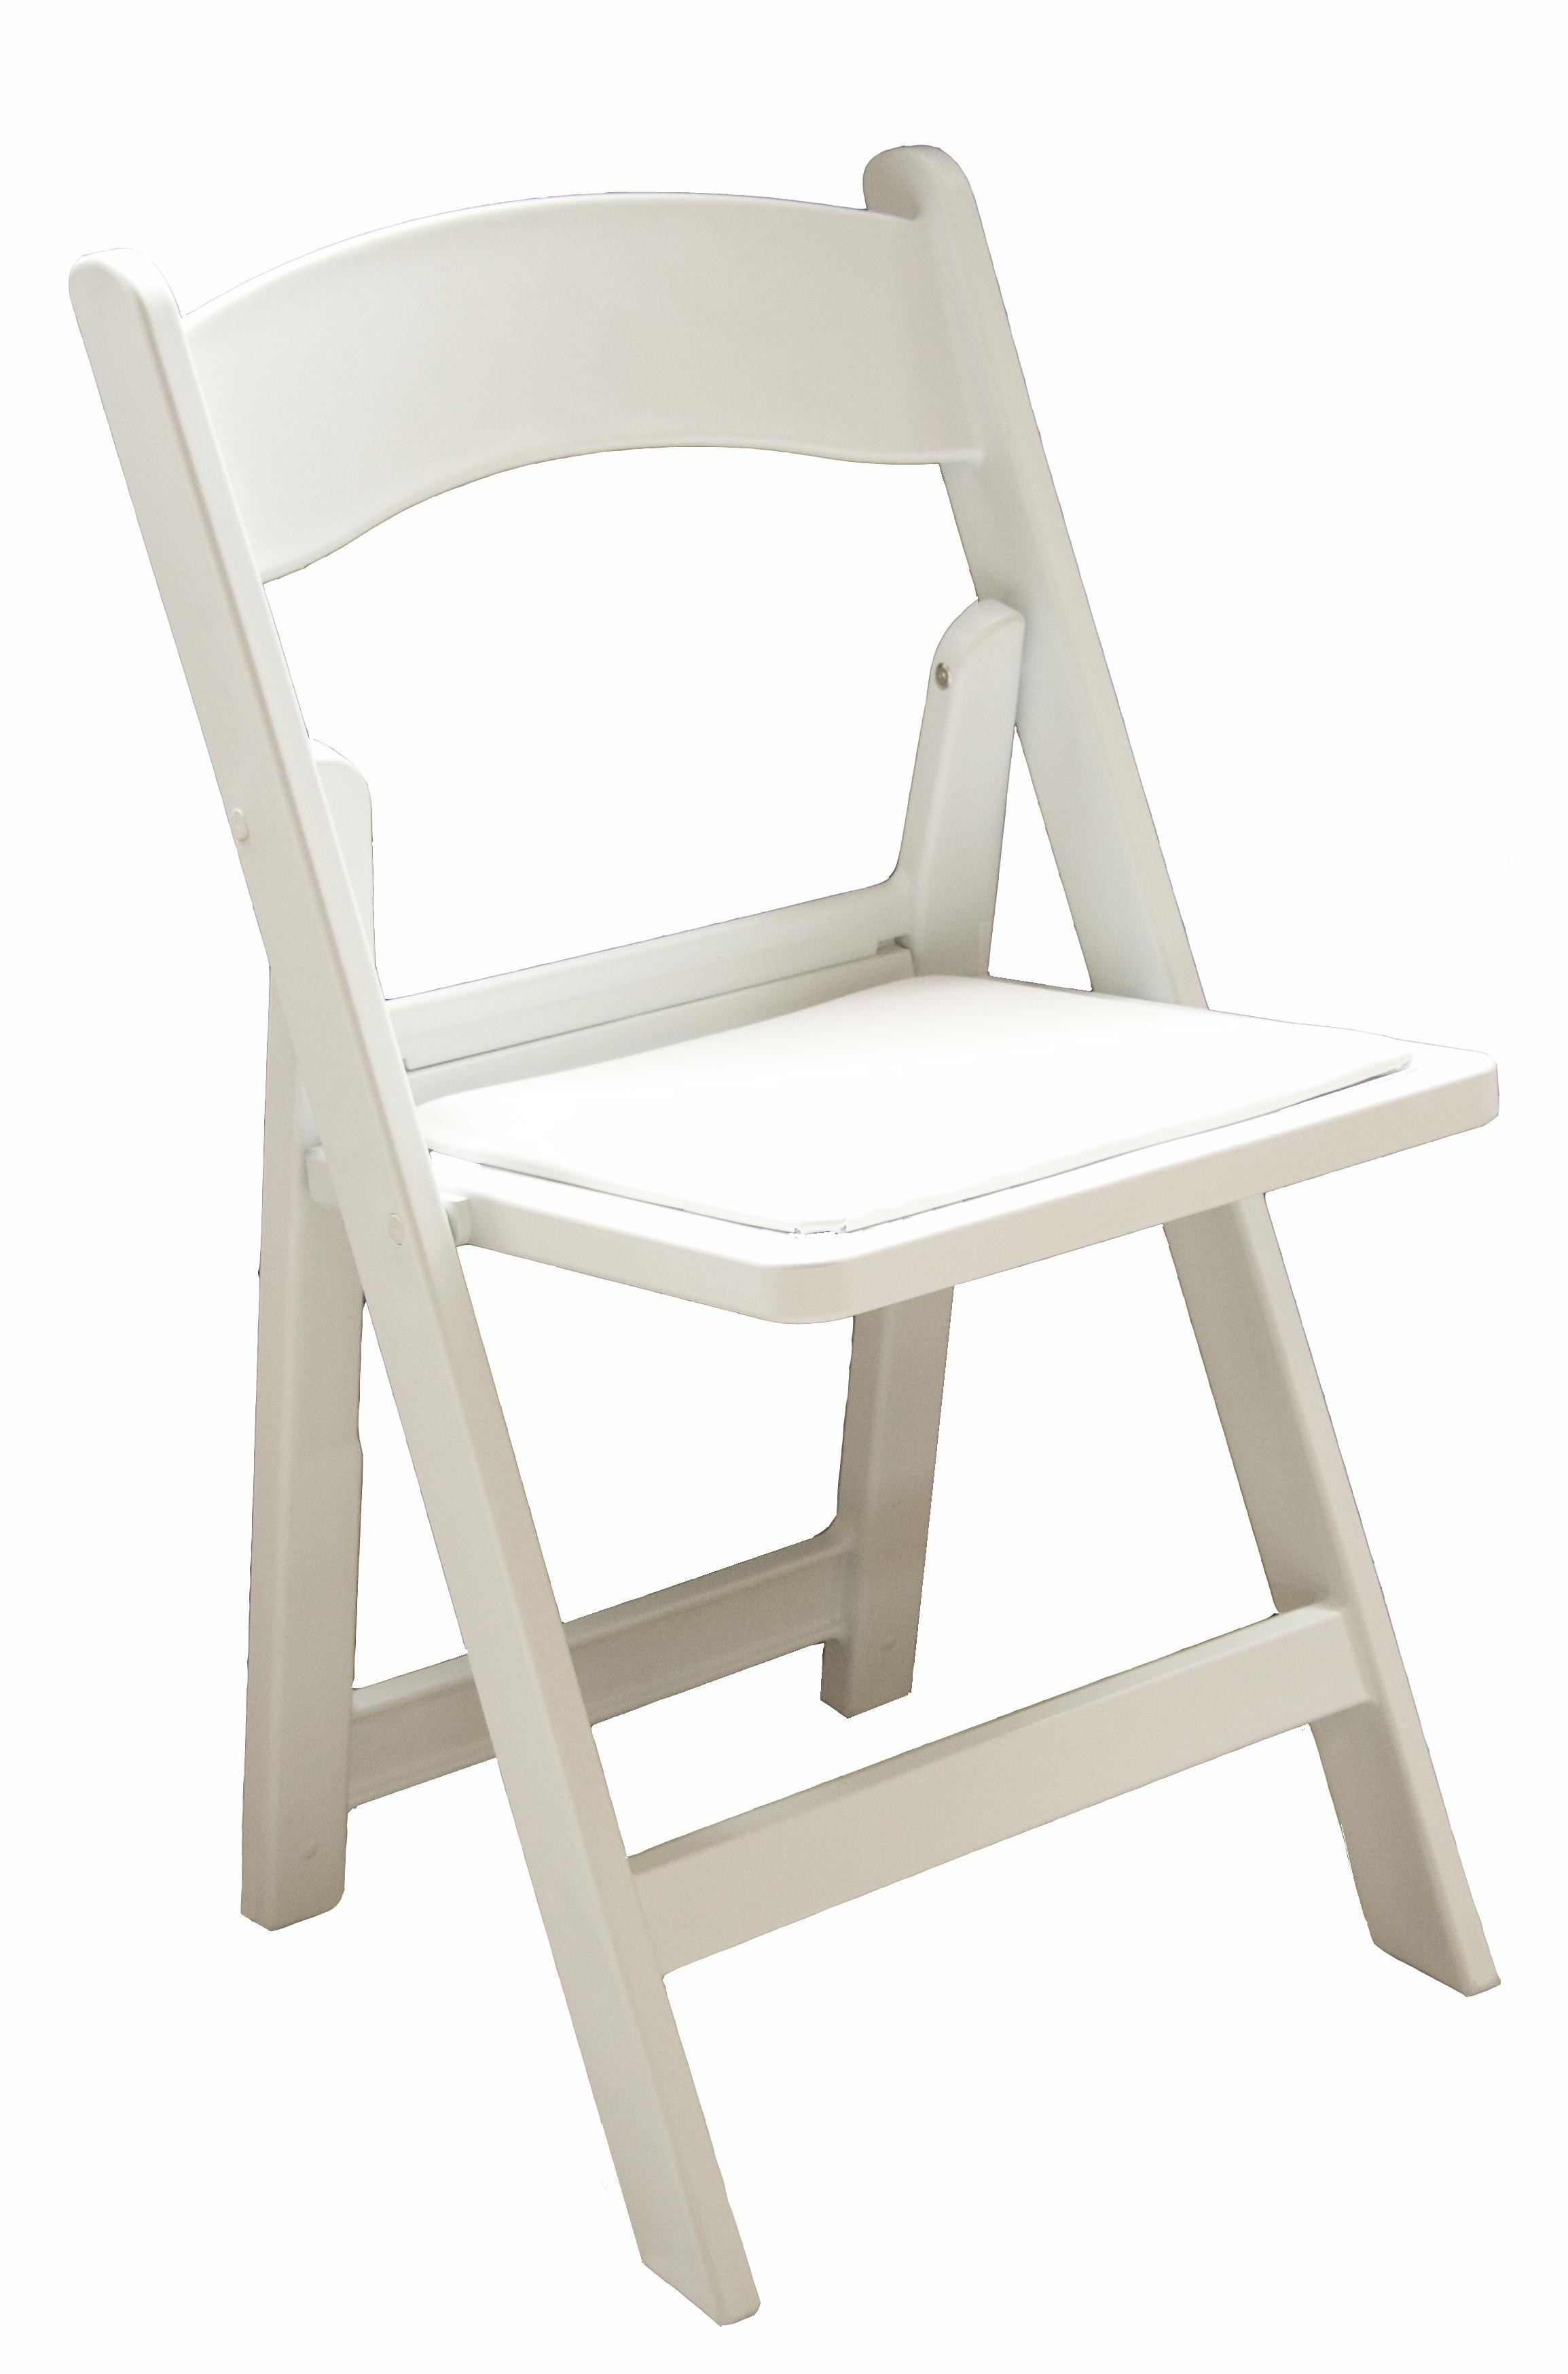 wedding-chair-klapstoel-wit-leren-zitting